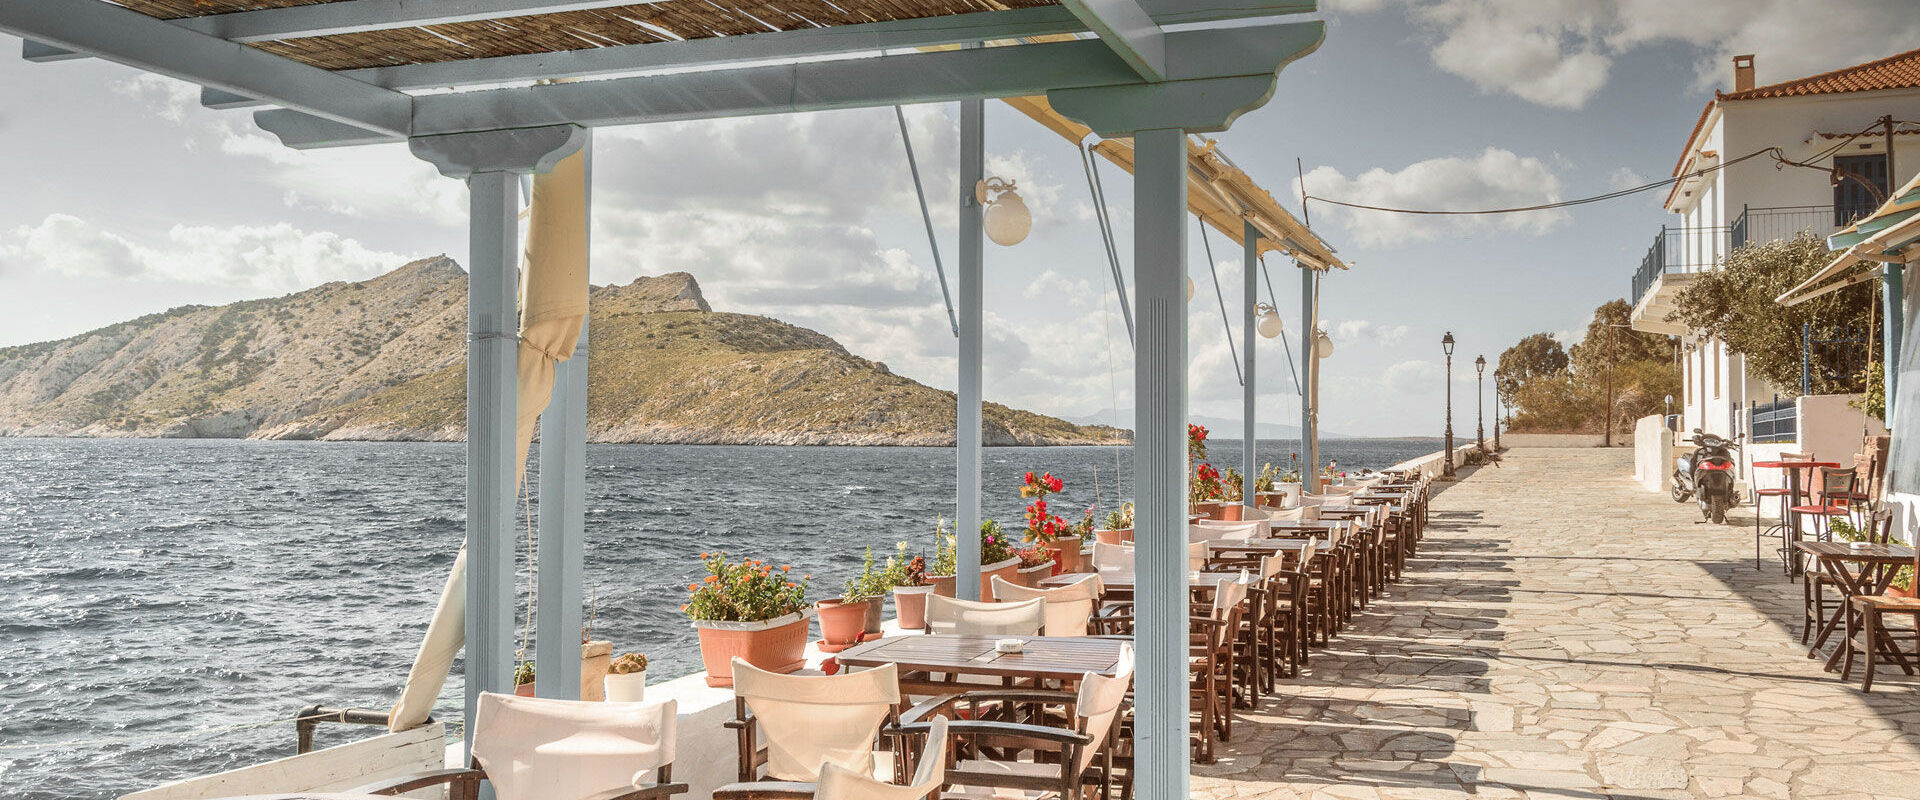 In Aegina you will find plenty of cafes and tavernas by the sea